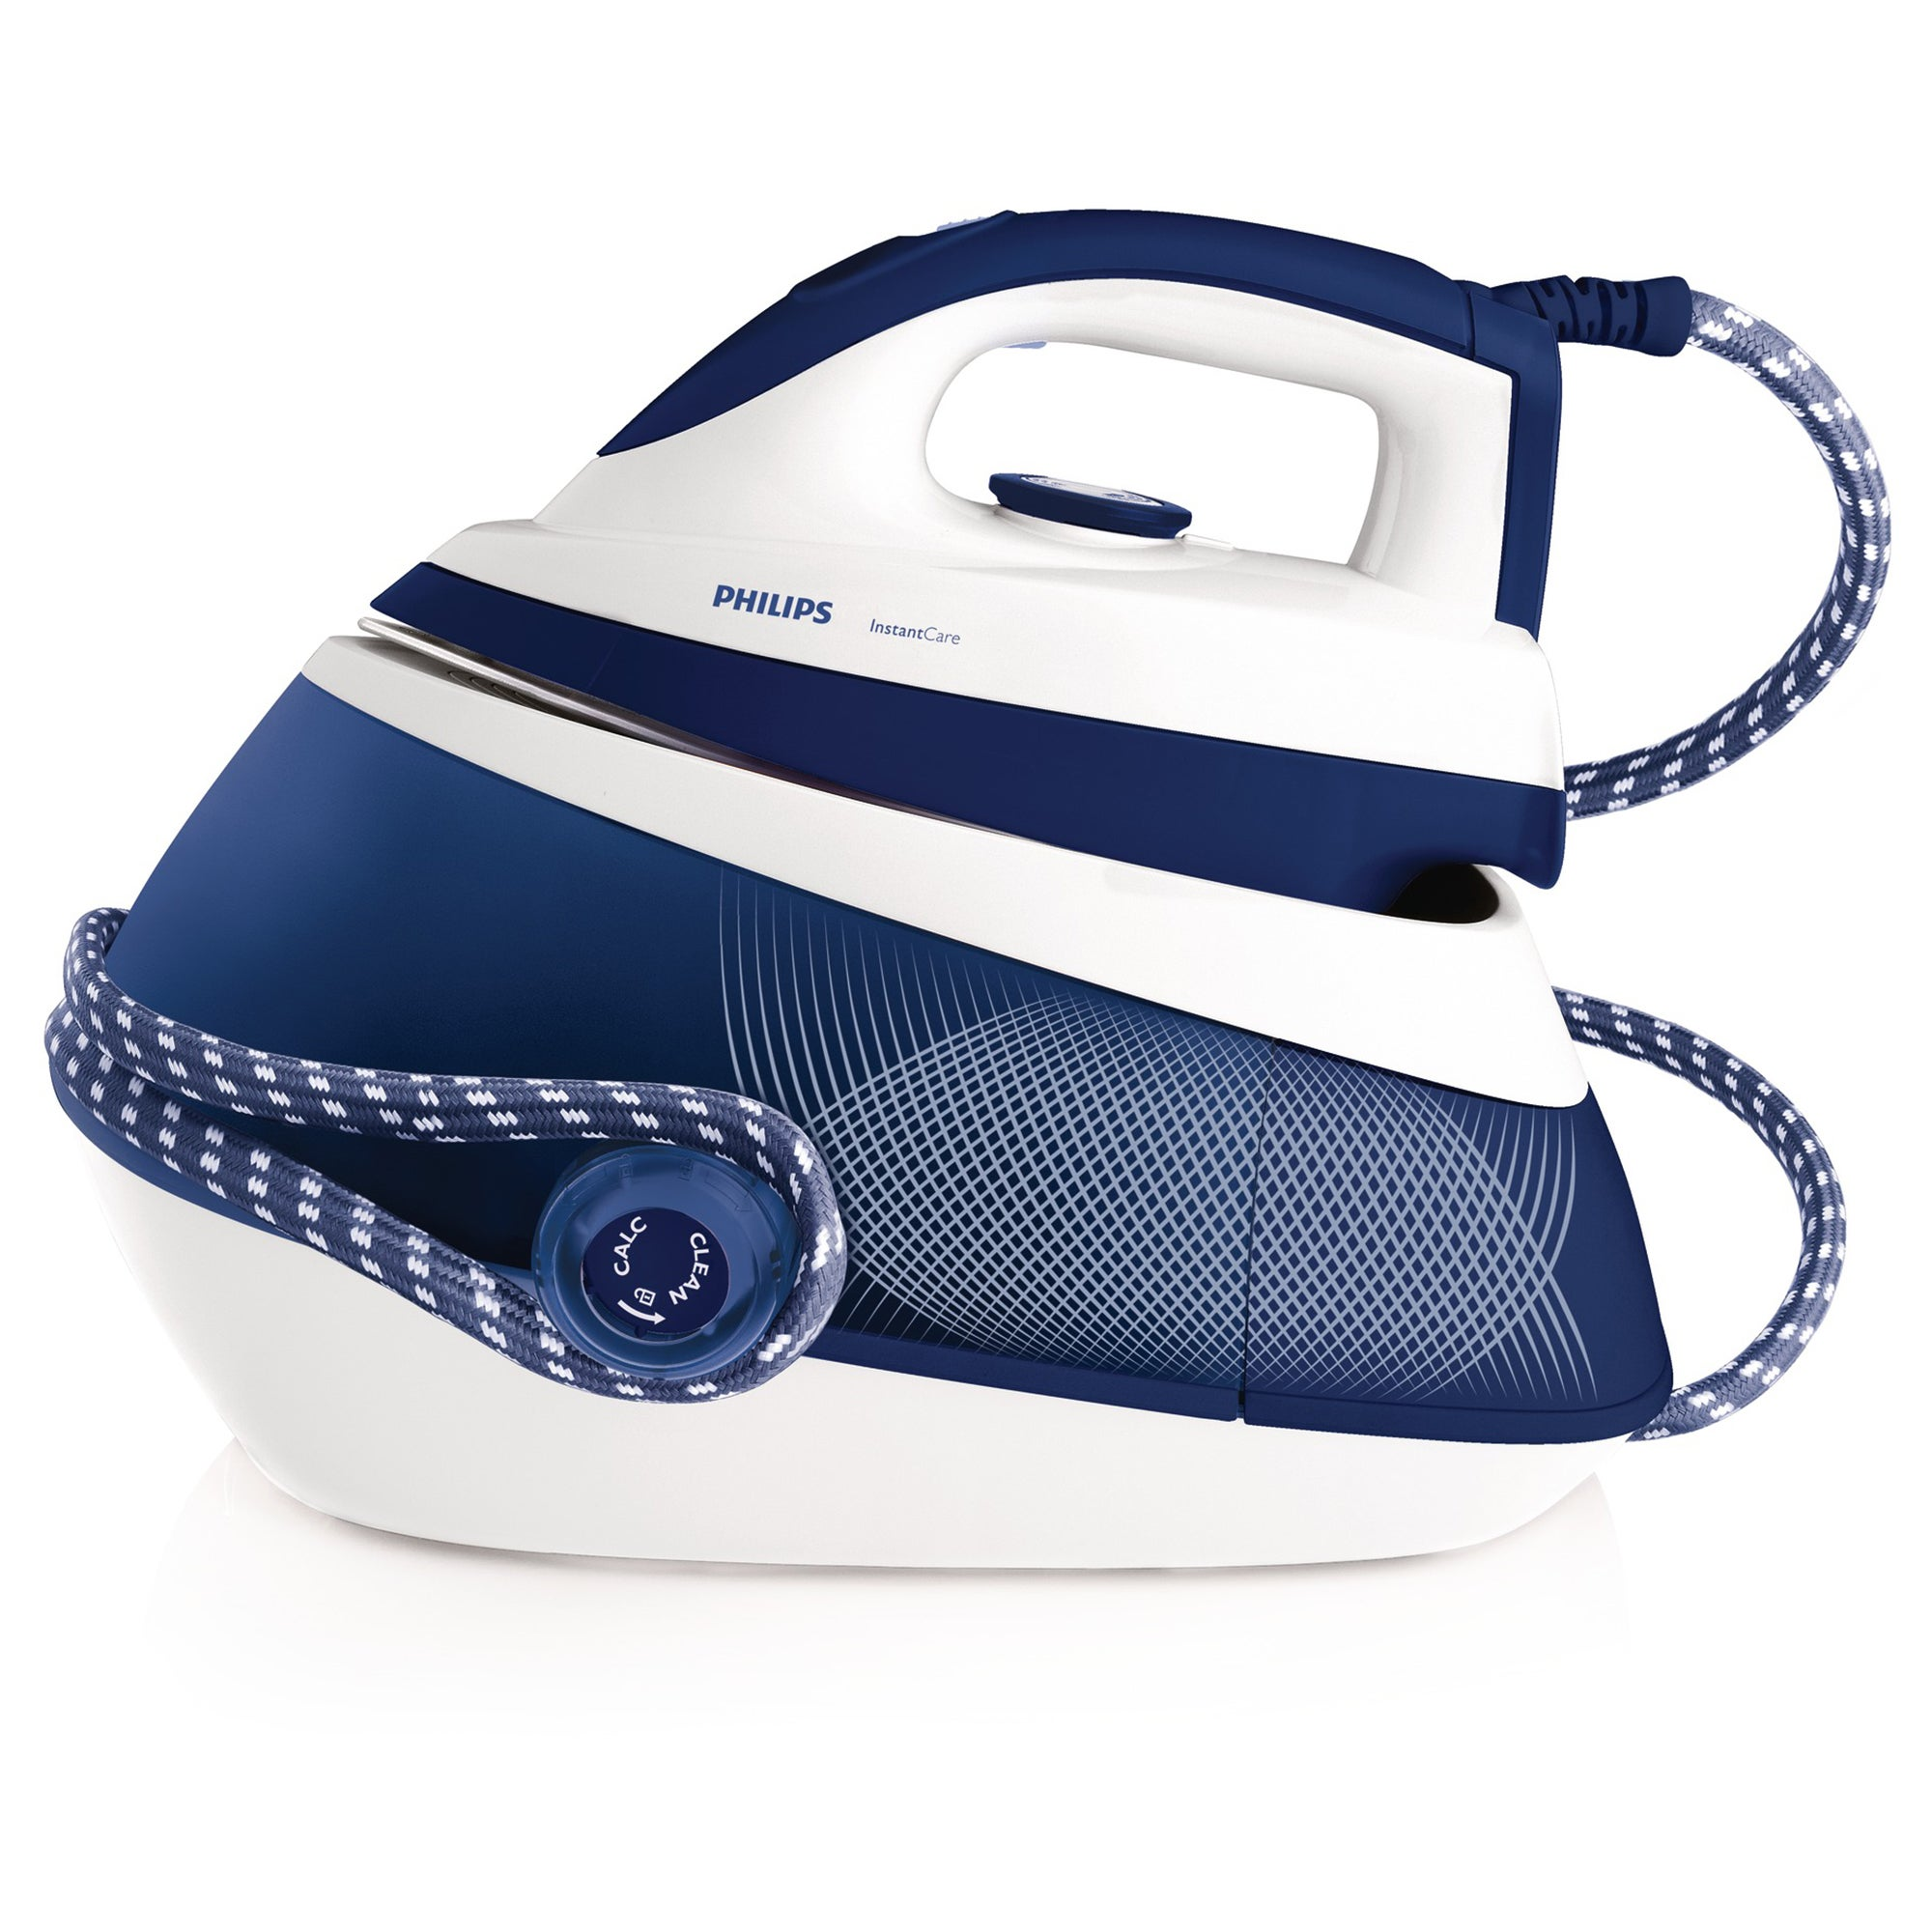 Philips InstantCare Steam Generator Iron